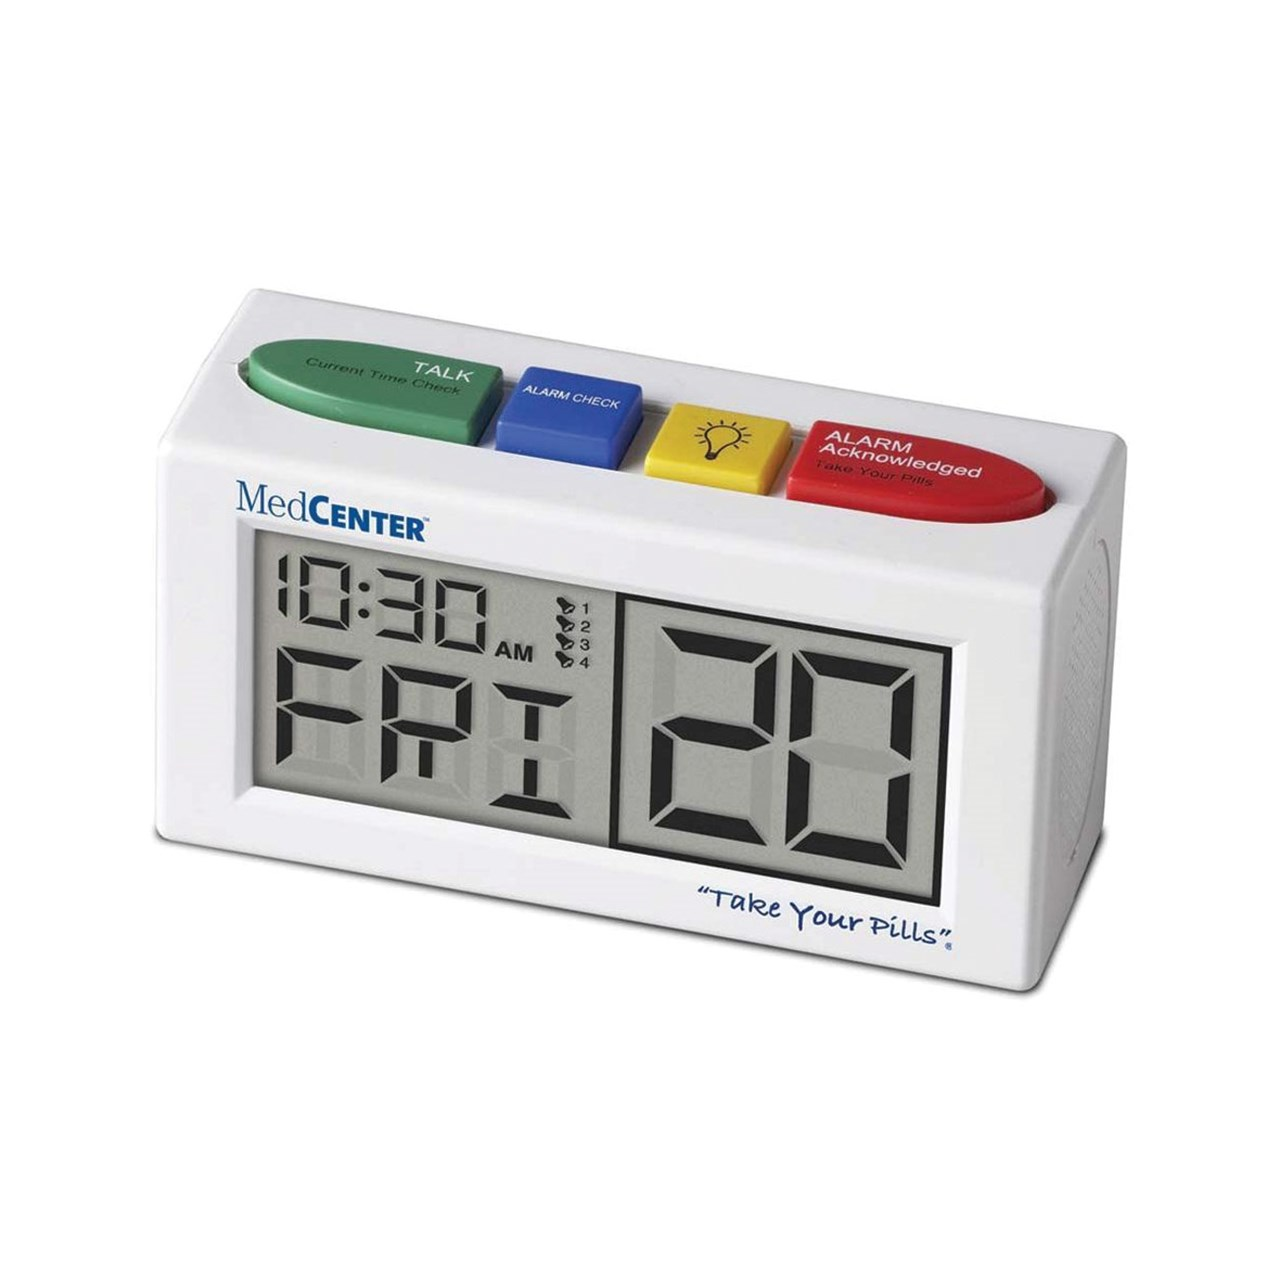 Maxiaids Talking Alarm Clock Medication Reminder